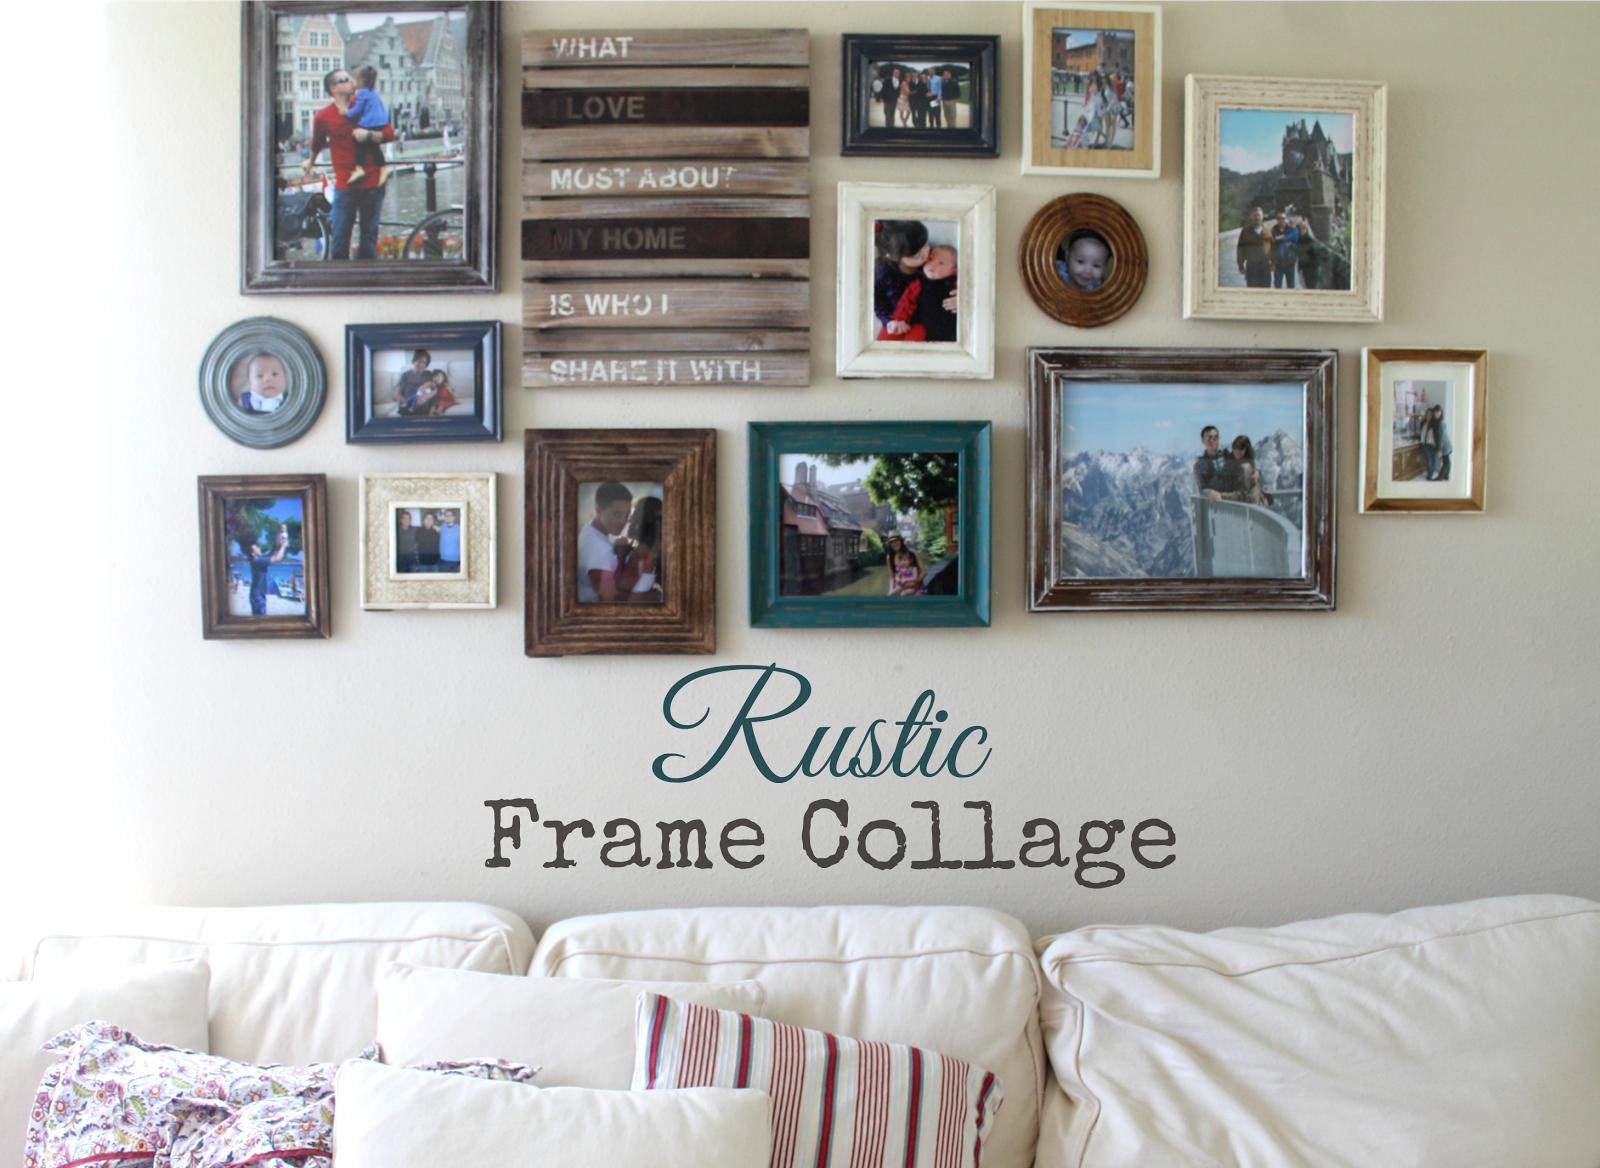 How To Make A Picture Frame Collage On Wall - Easy Craft Ideas